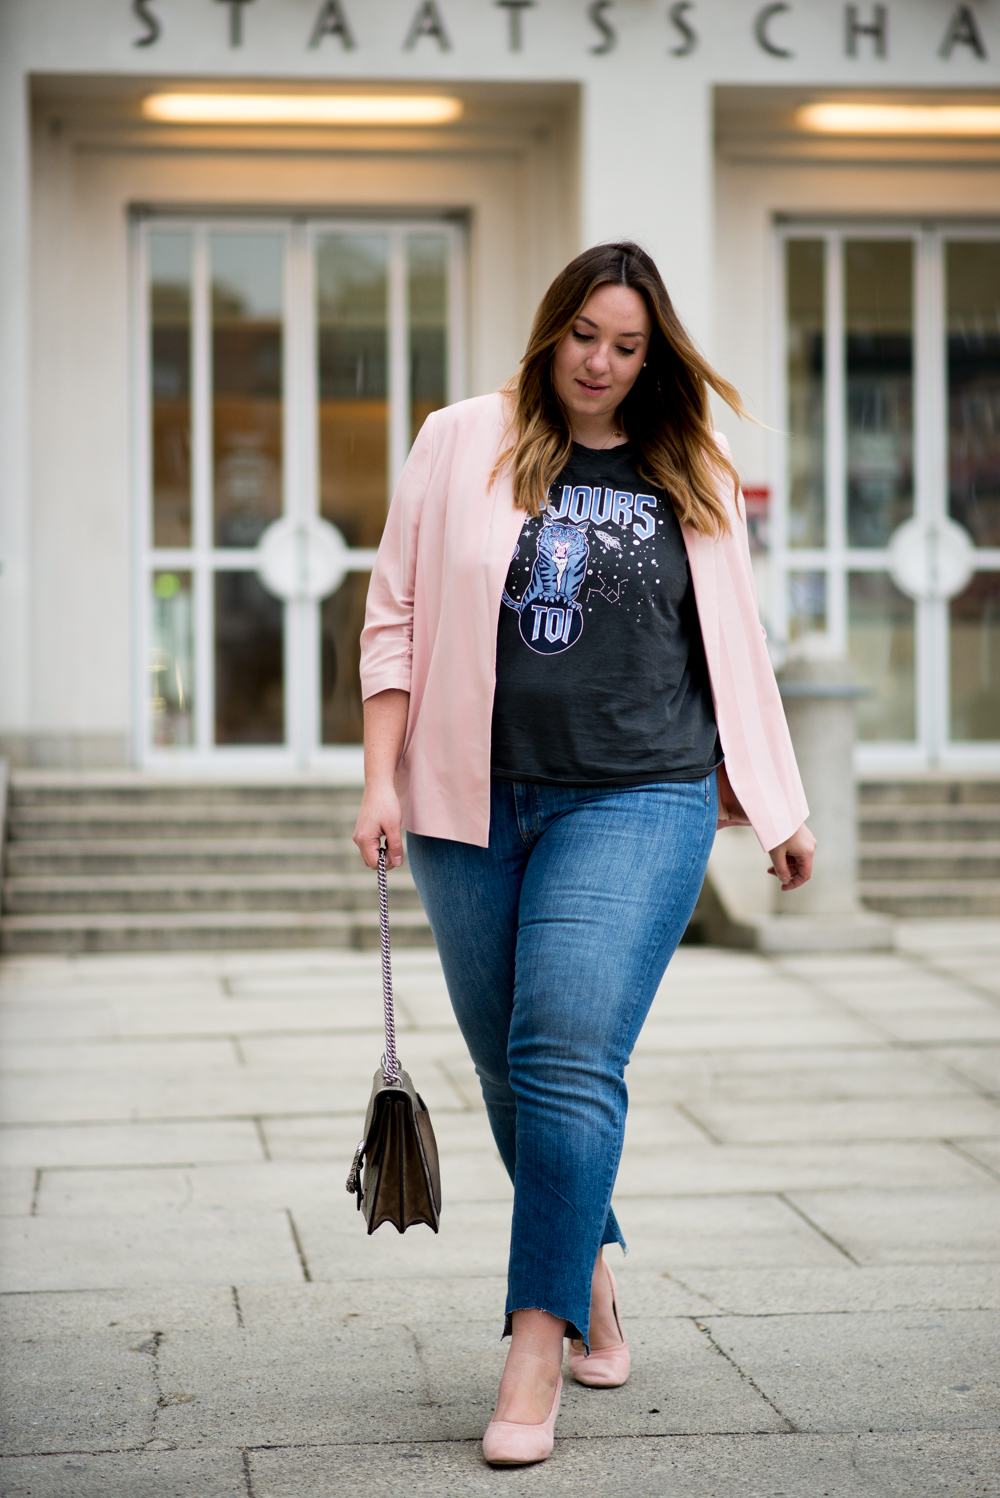 The Skinny and the Curvy One_Plussize_Blogger_Fashionblog Deutschland_Blogger_Curve Fashion (1 von 8)